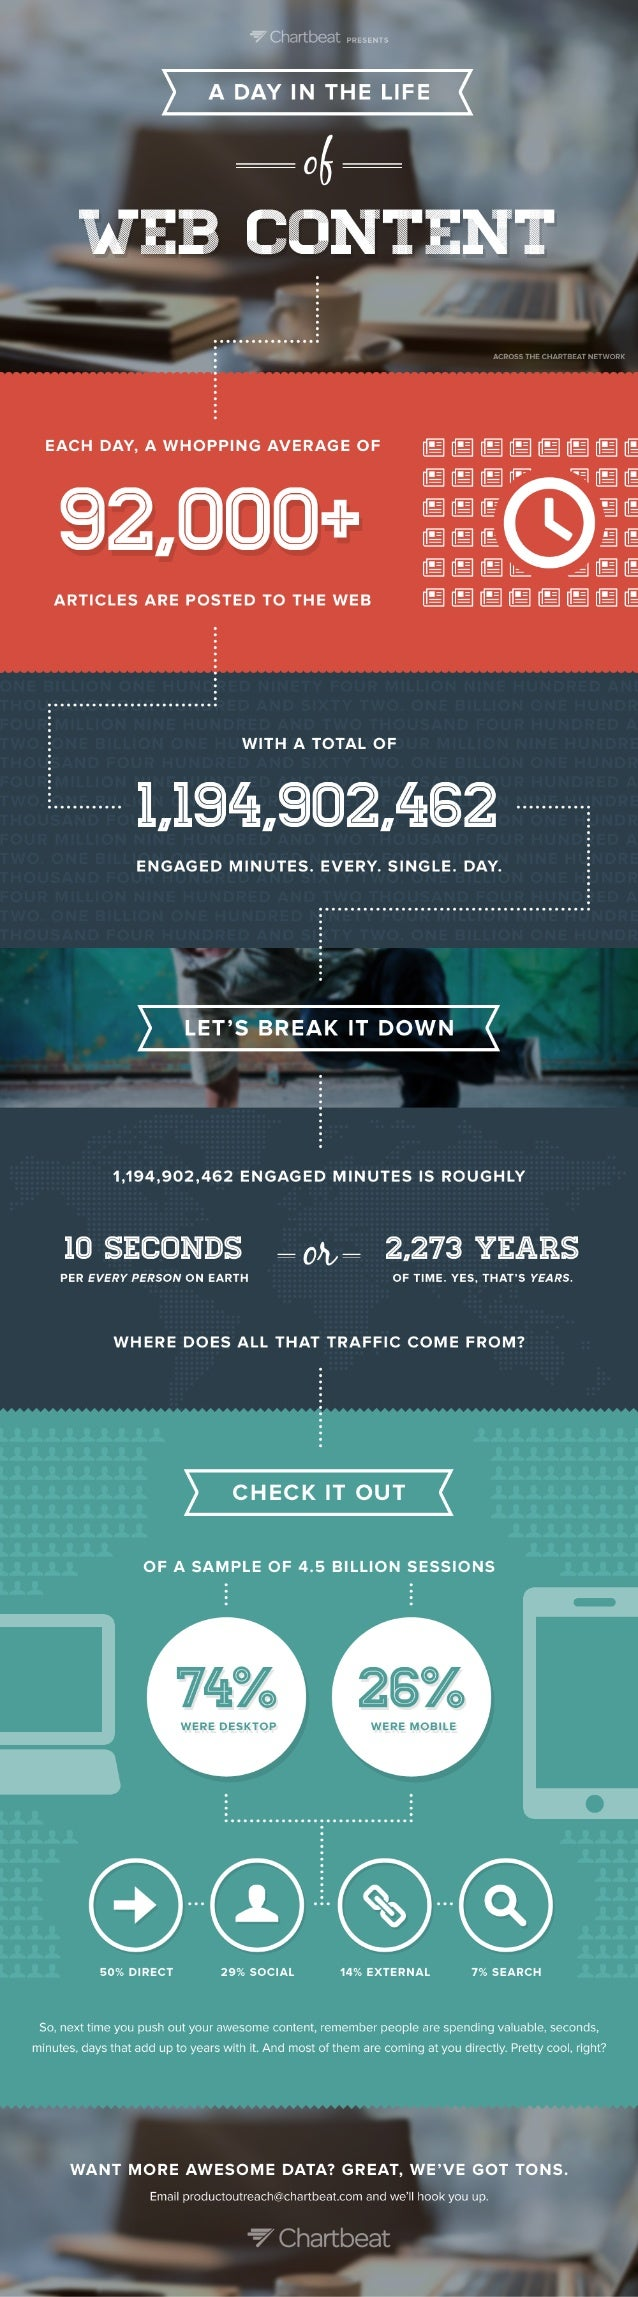 A Day in the Life of Web Content